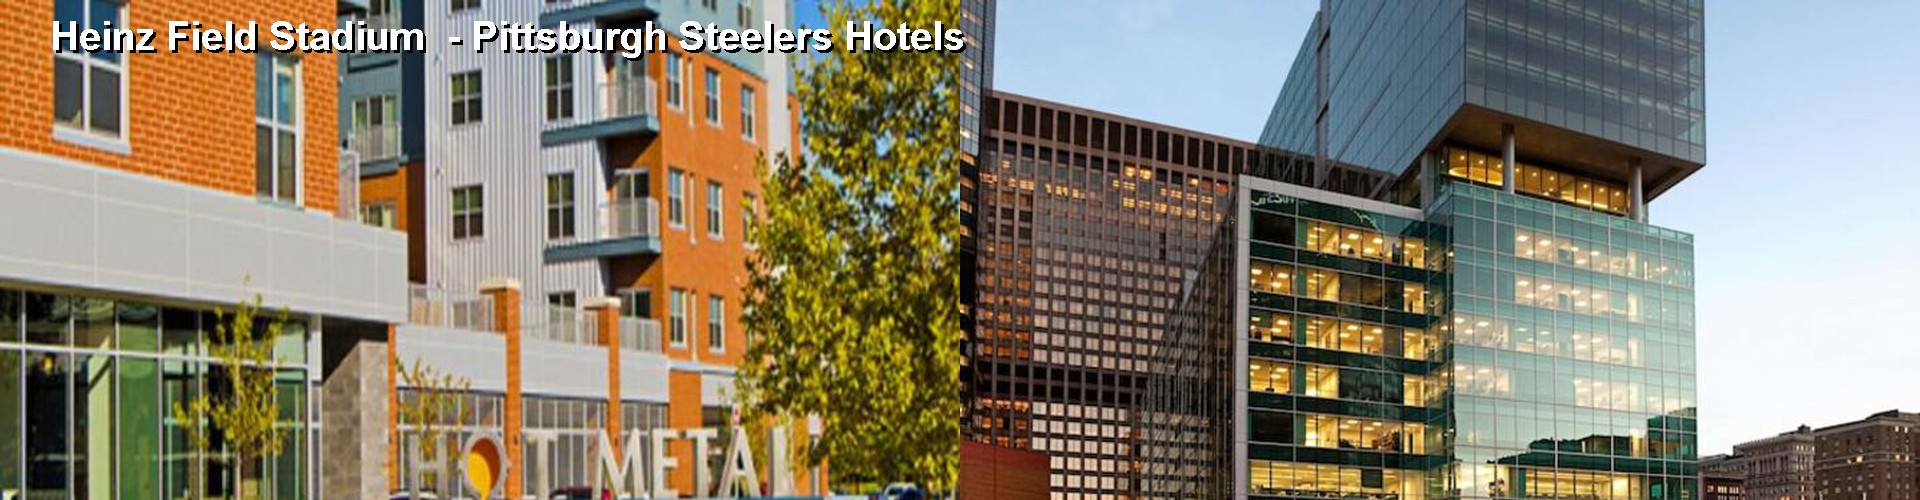 5 Best Hotels near Heinz Field Stadium - Pittsburgh Steelers